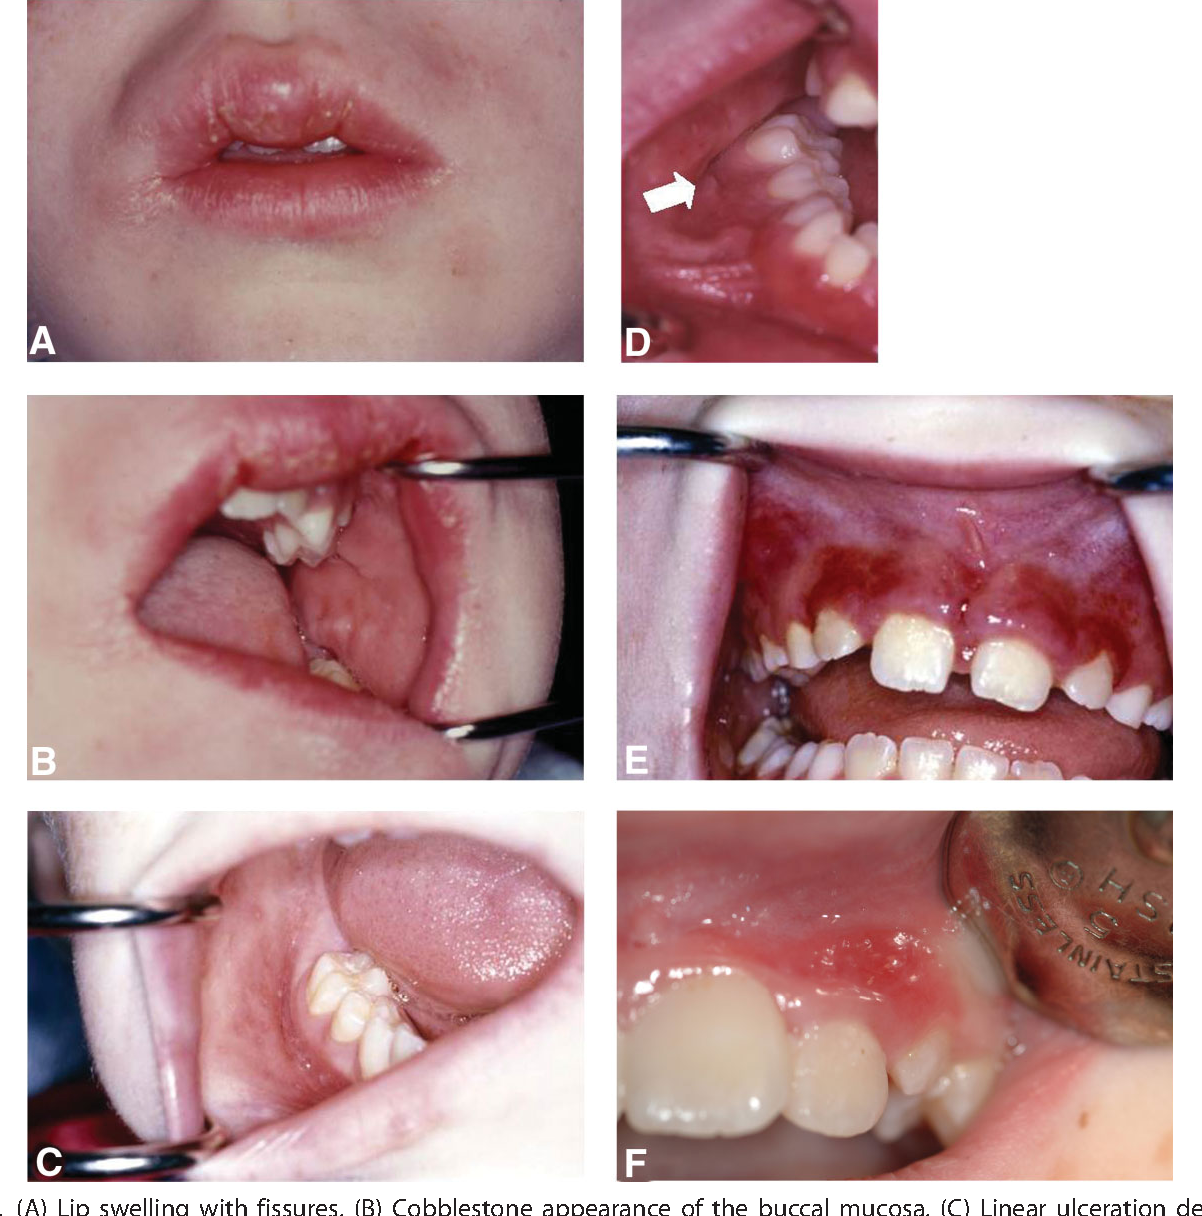 FIGURE 1. (A) Lip swelling with fissures. (B) Cobblestone appearance